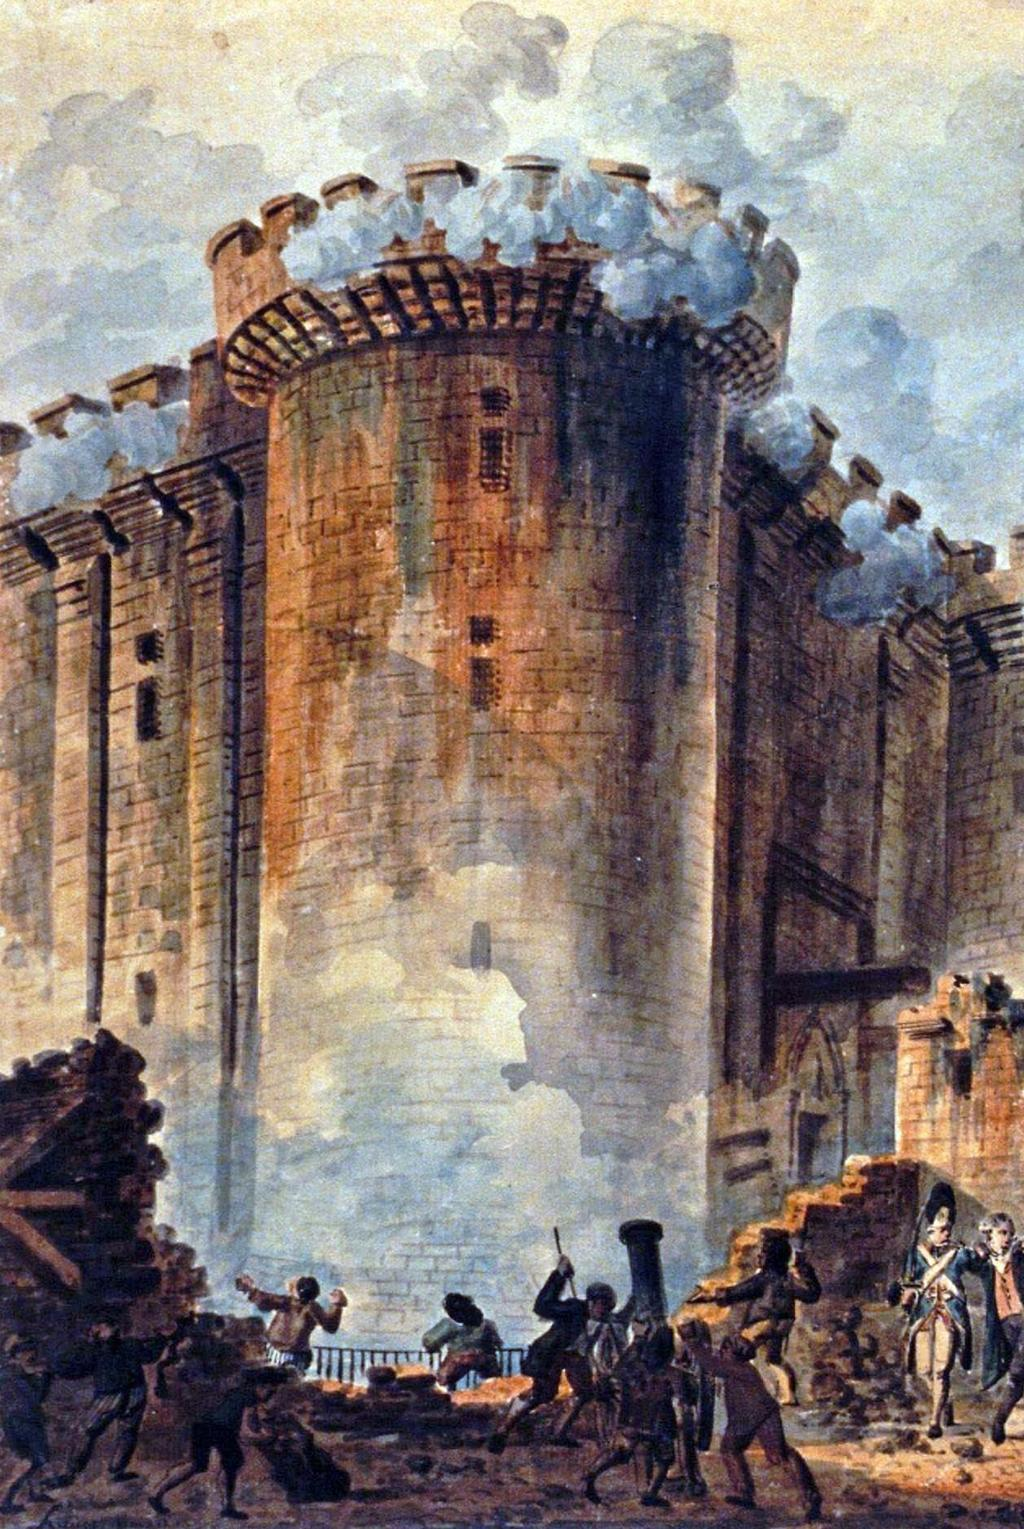 Storming the Bastille Bastille was a prison for political and upper-class offenders Prisoners were jailed without trial, on order of the king Start of the Revolution: rioters stormed the Bastille